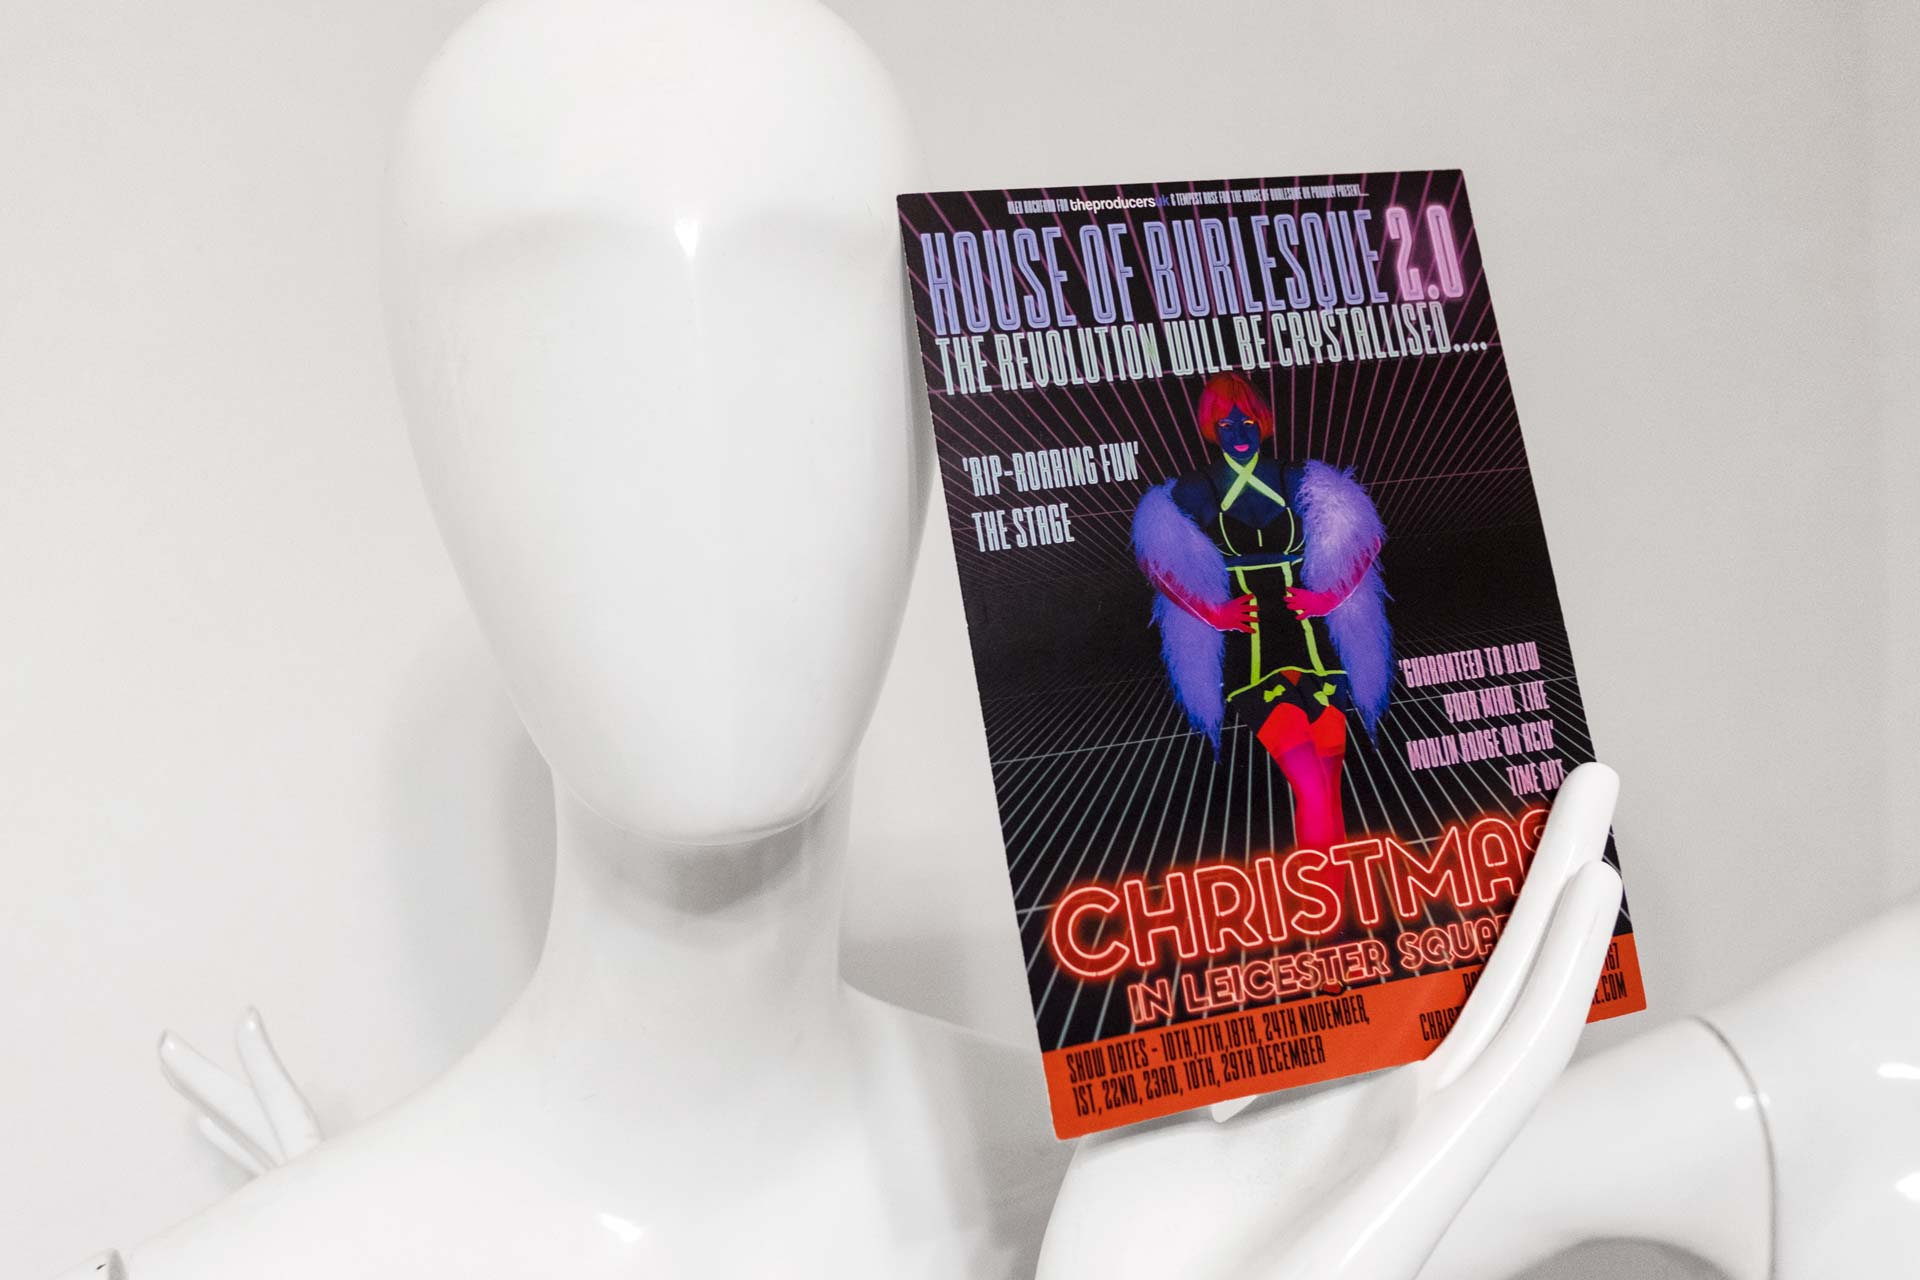 leaflet of the show house of burlesque 2.0 london